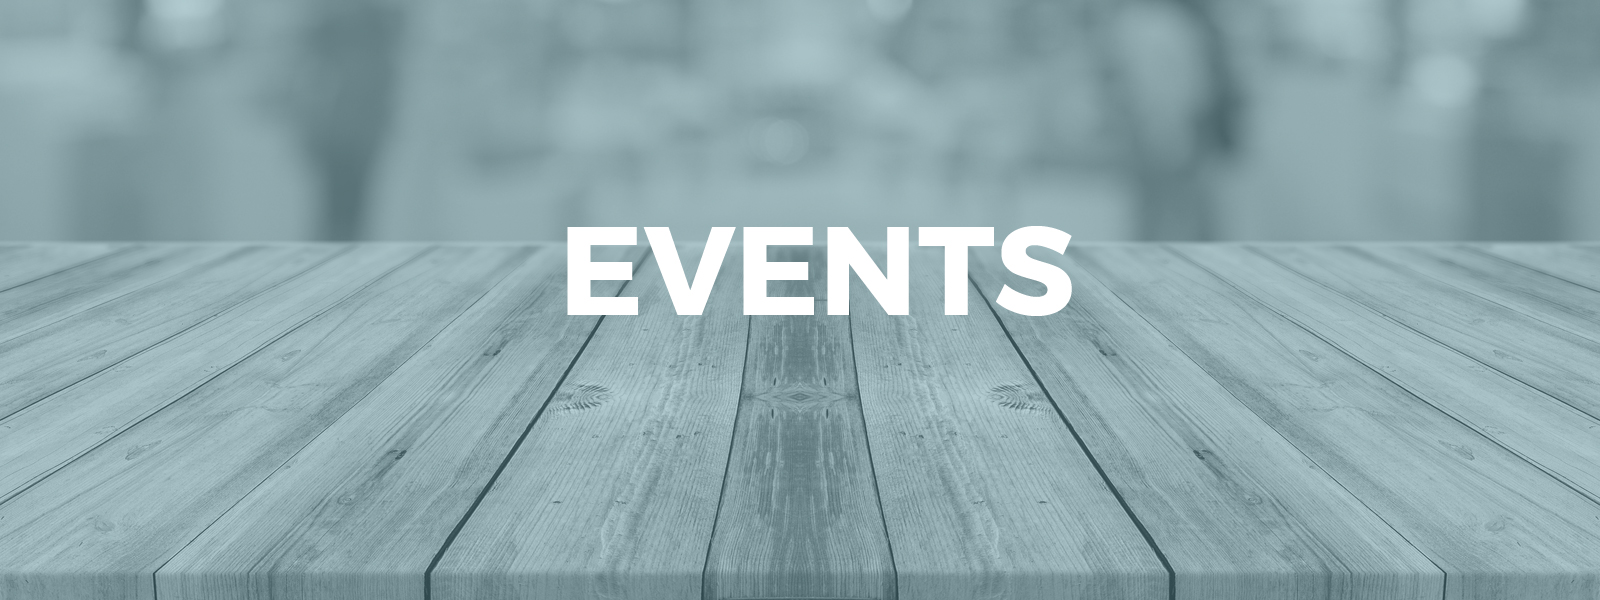 Events-DecisionDesigns